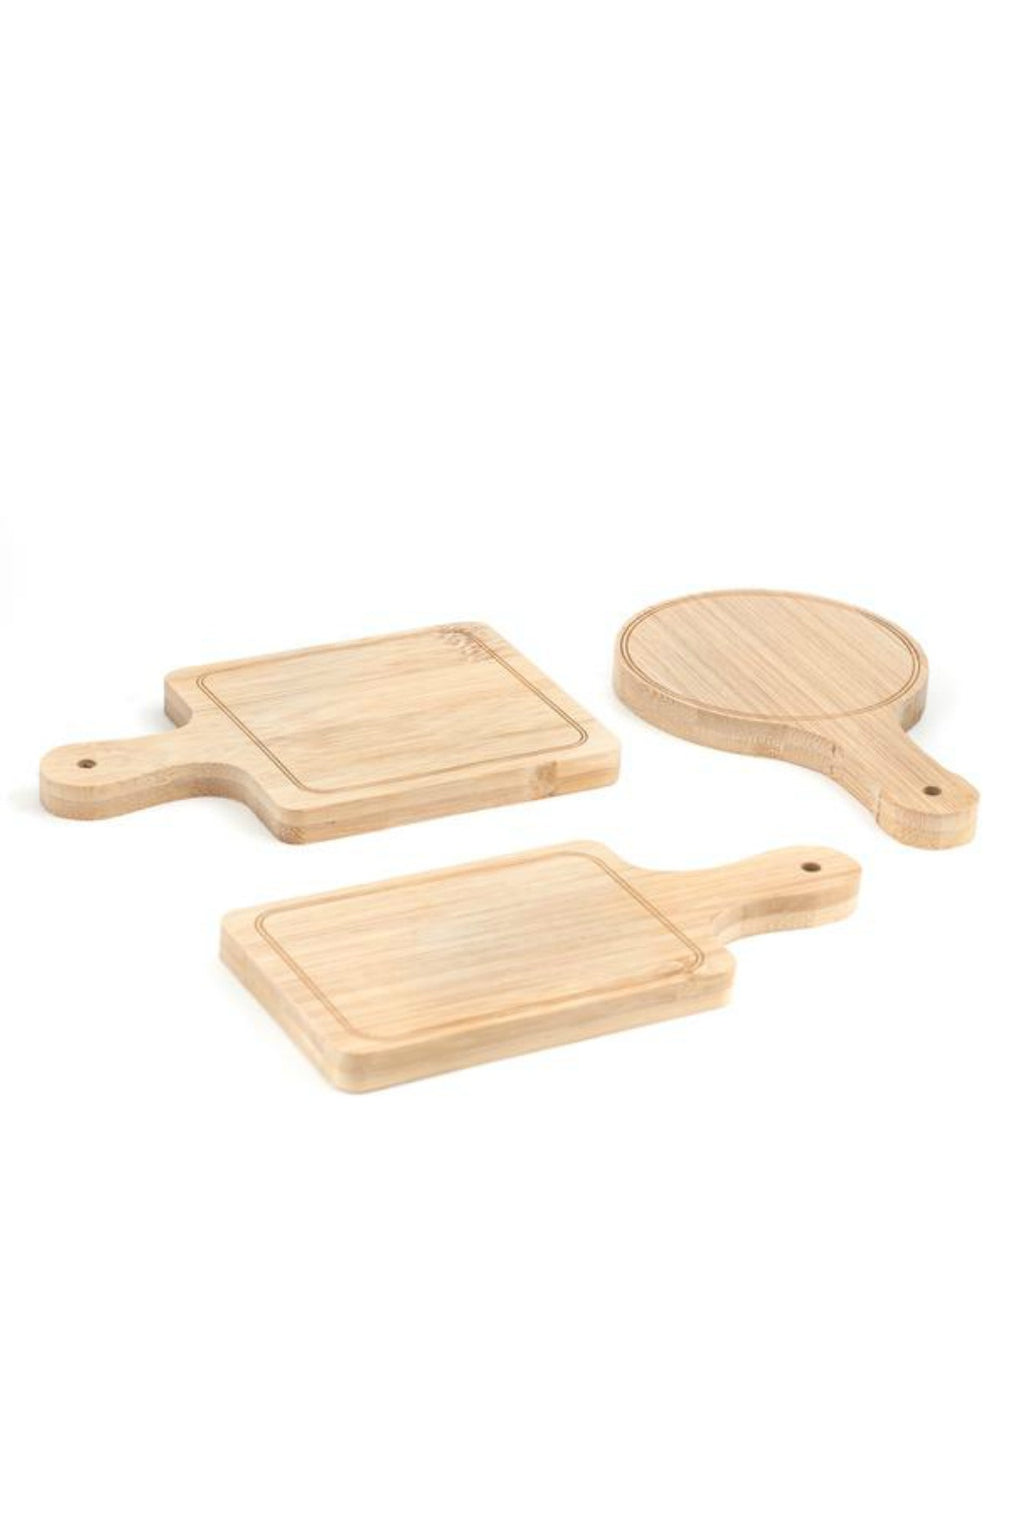 Kikkerland Mini Bamboo Serving Trays